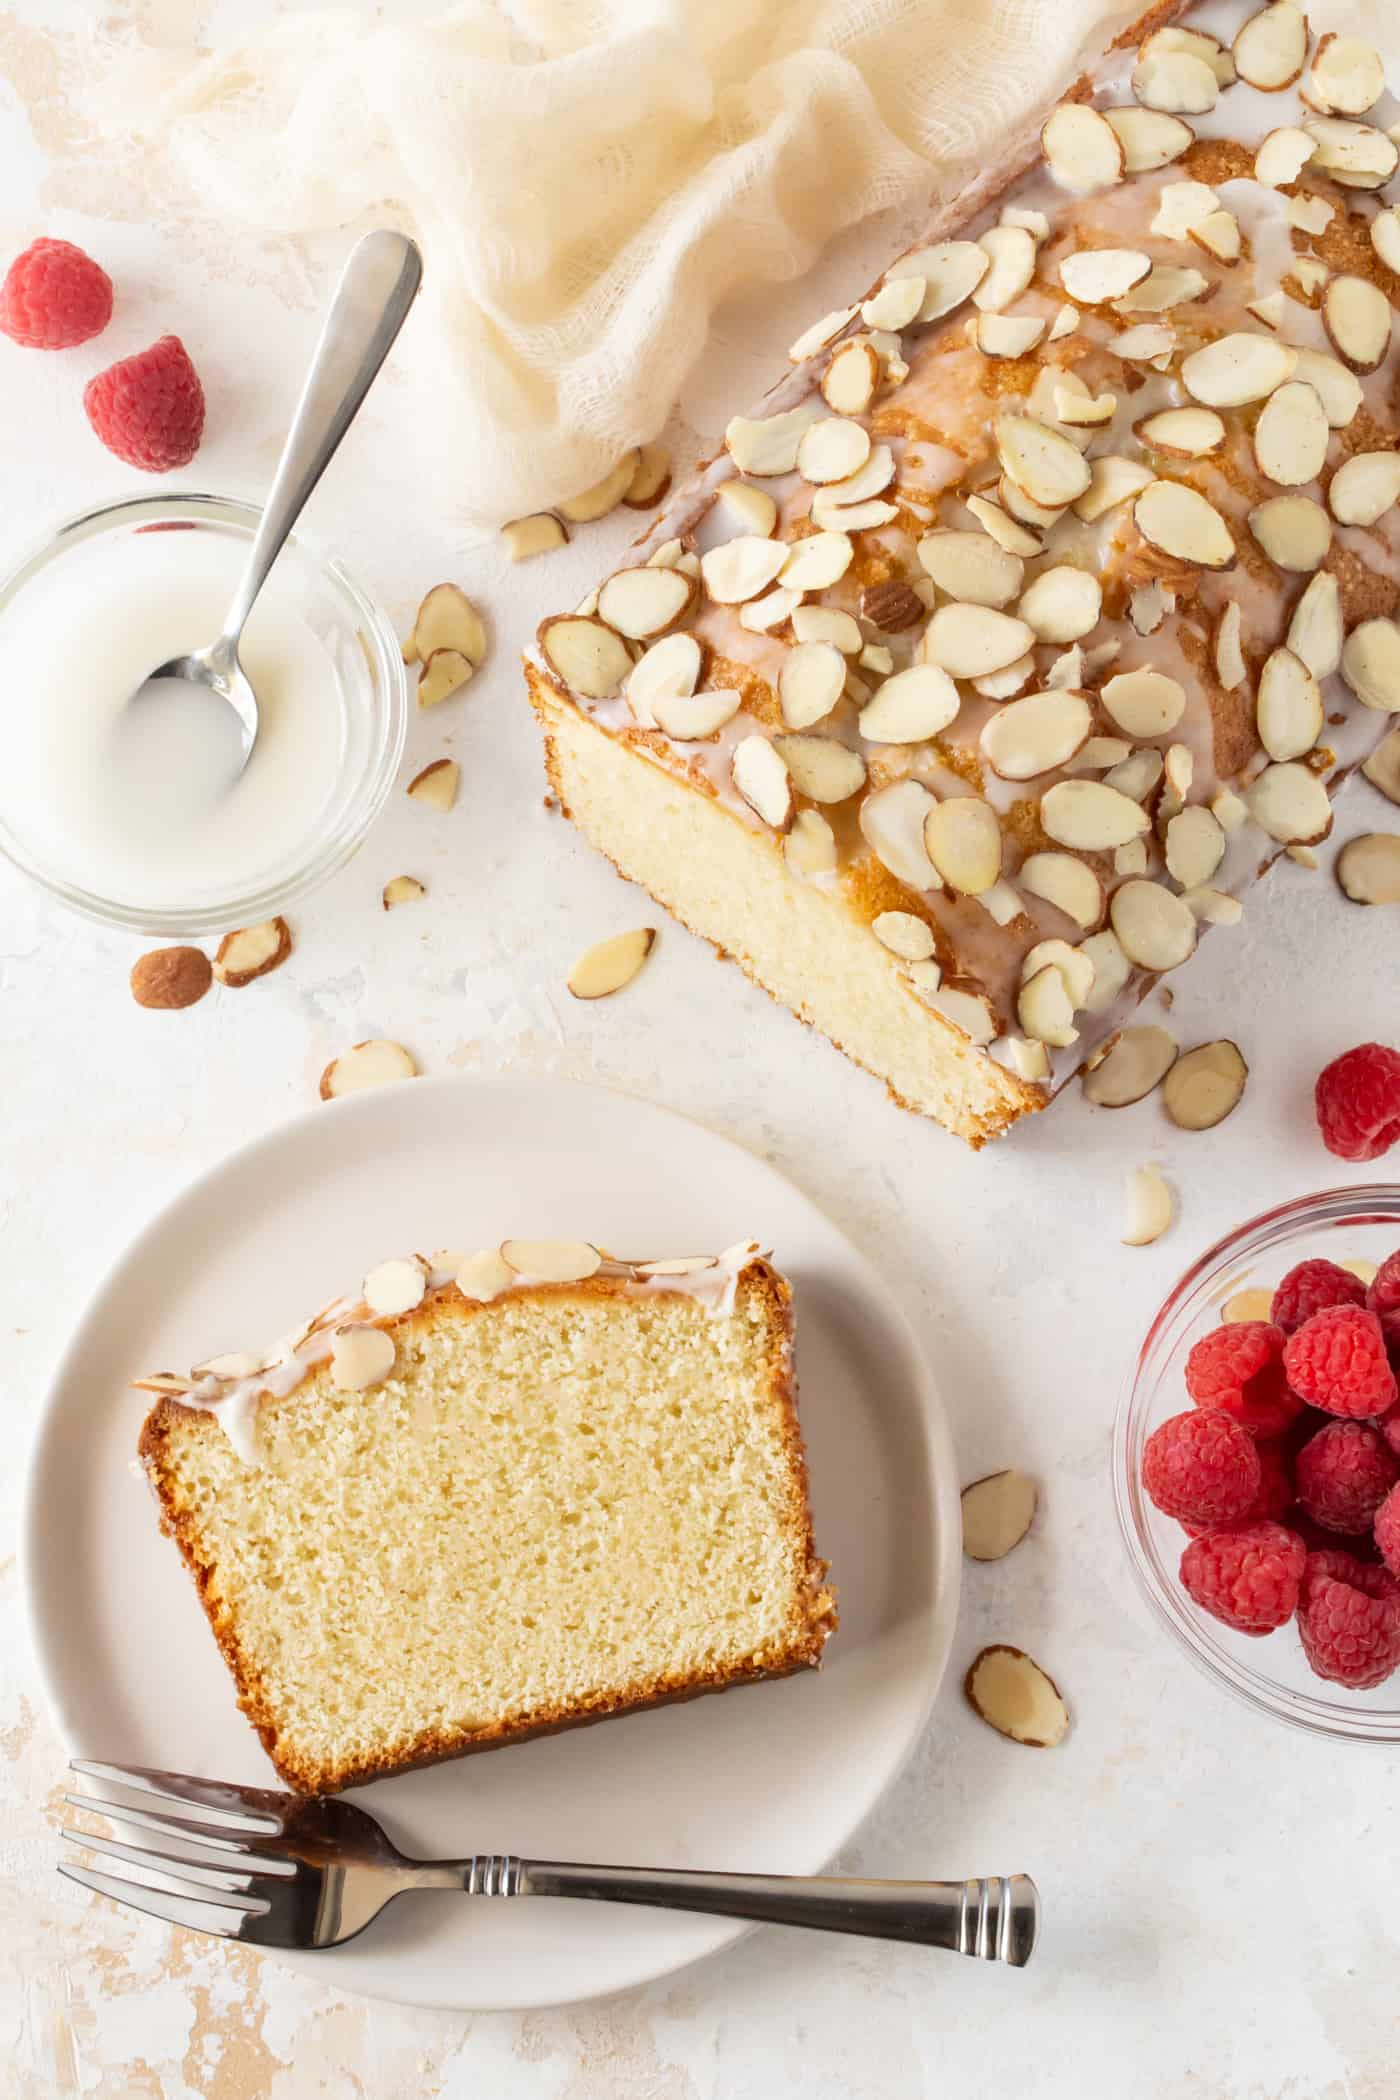 A loaf and a few slices of easy Almond Pound Cake made with almond paste. Both are drizzled with almond glaze and topped with sliced almonds.